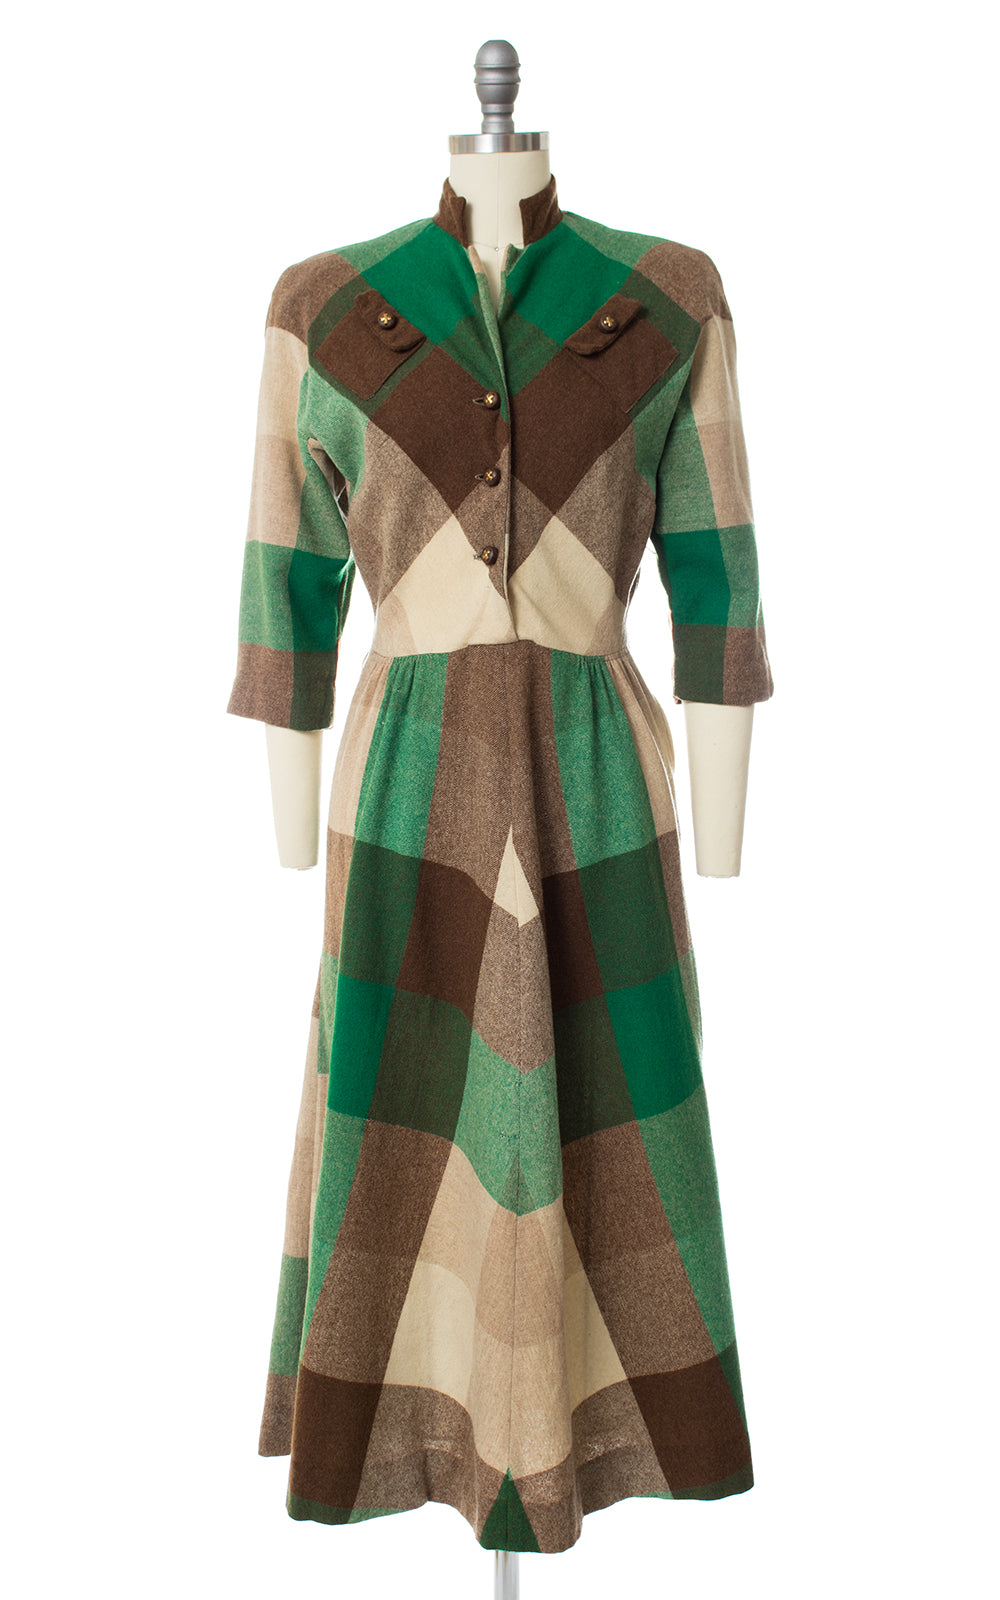 1940s Plaid Wool Shirtwaist Dress